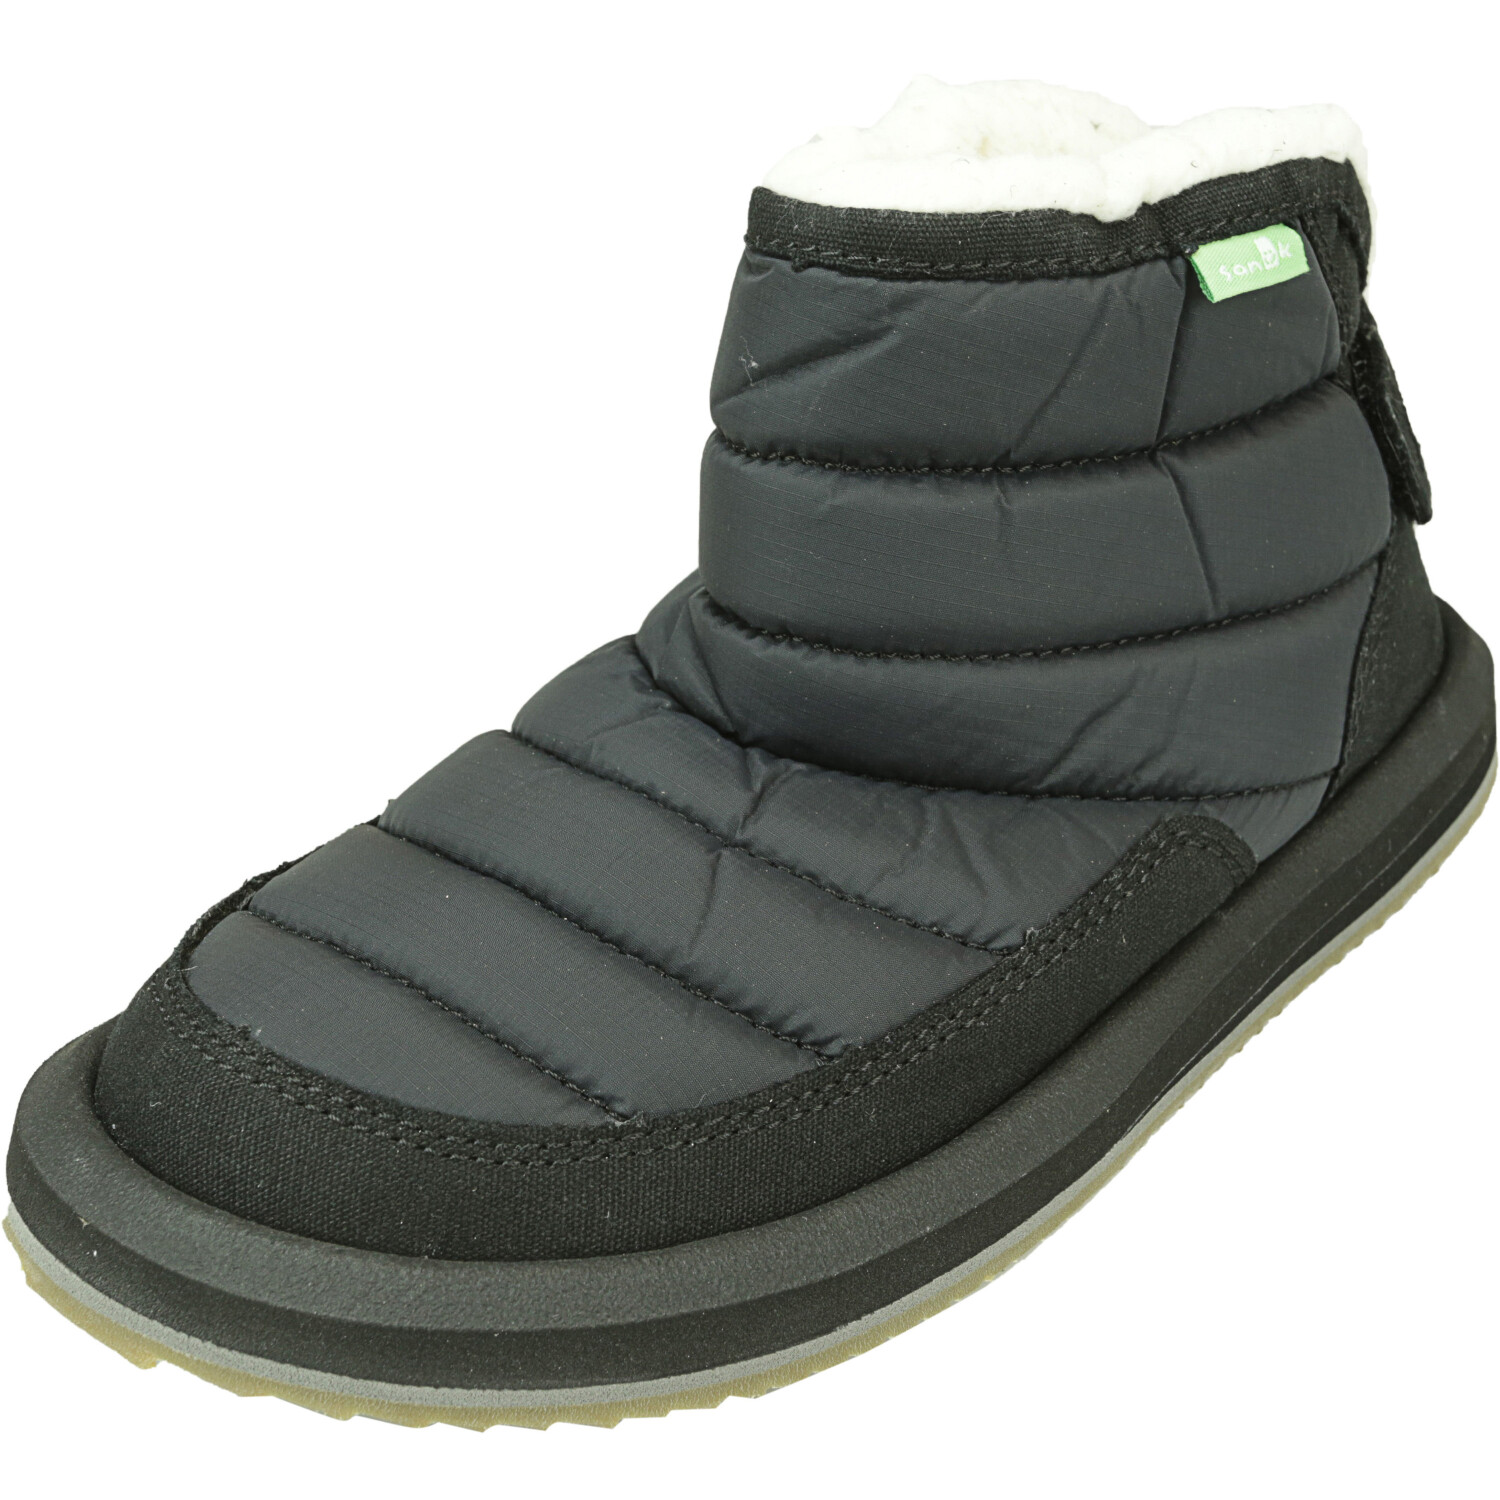 Sanuk Lil Puffer Black Ankle-High Boot - 3M